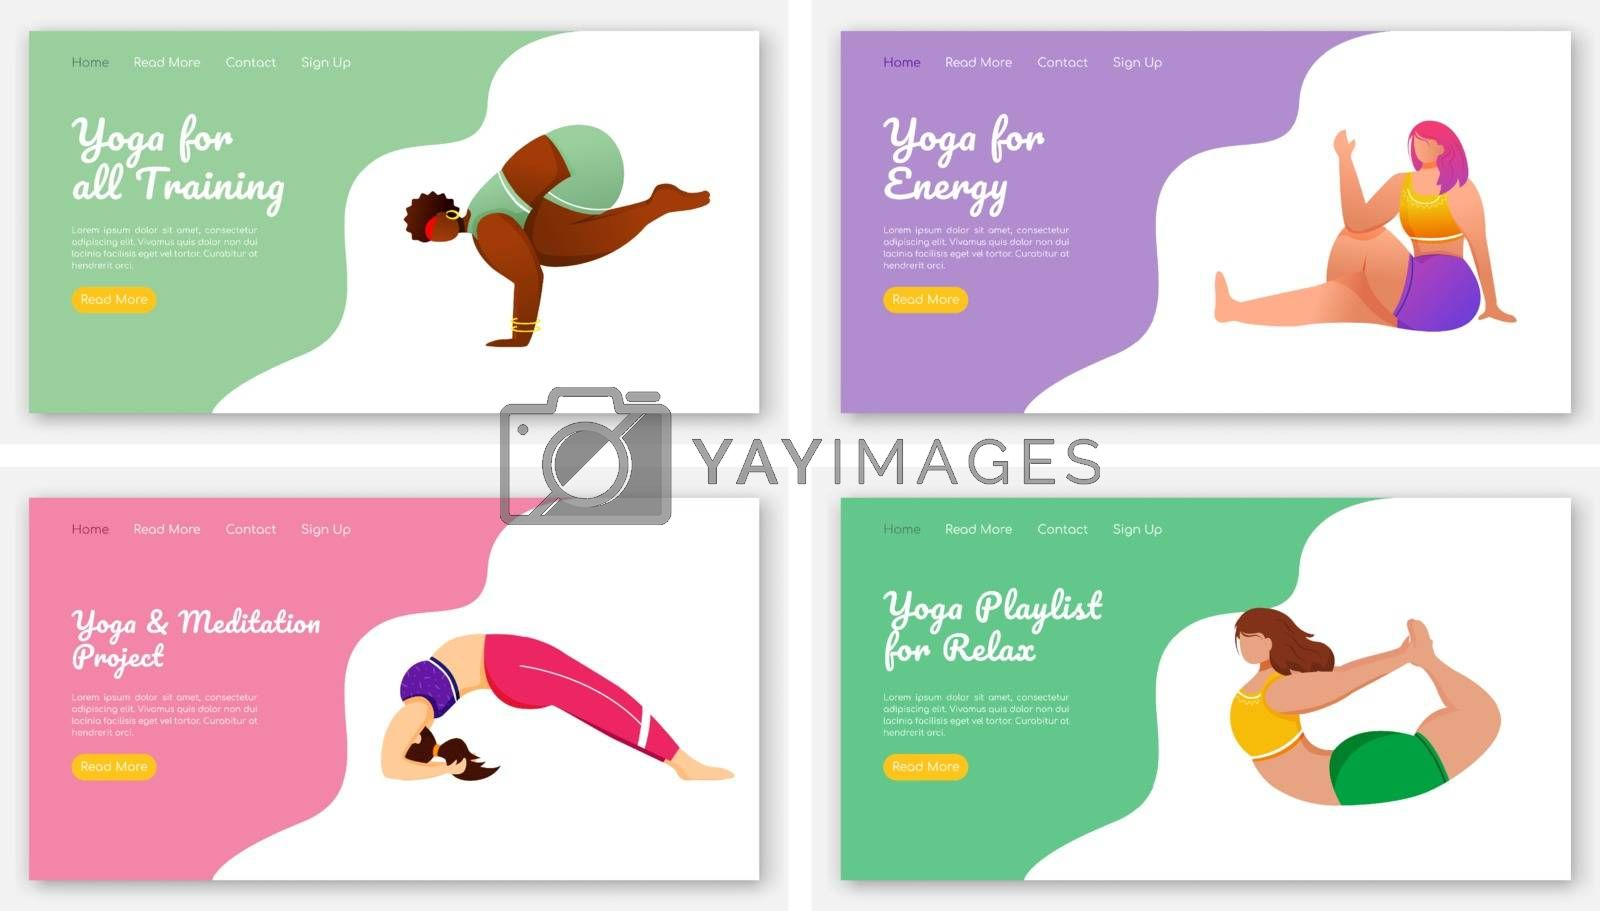 Yoga poses landing page vector template set. Meditation exercises. Healthy lifestyle. Bodypositive website interface idea with flat illustrations. Homepage layout, web banner, webpage cartoon concept